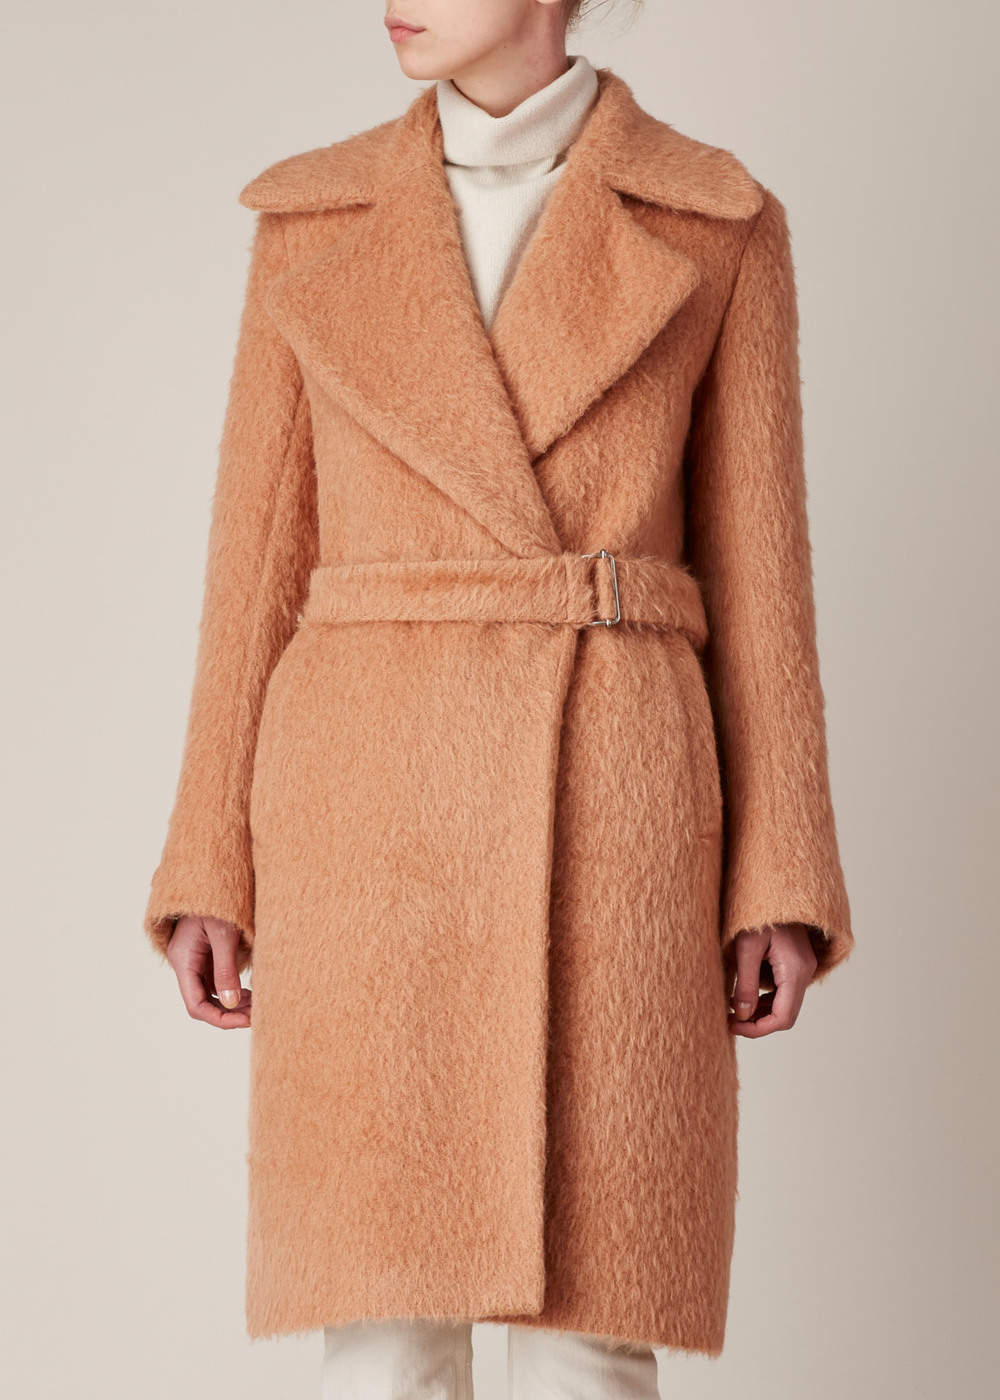 Dries van Noten Peach Riviera Coat